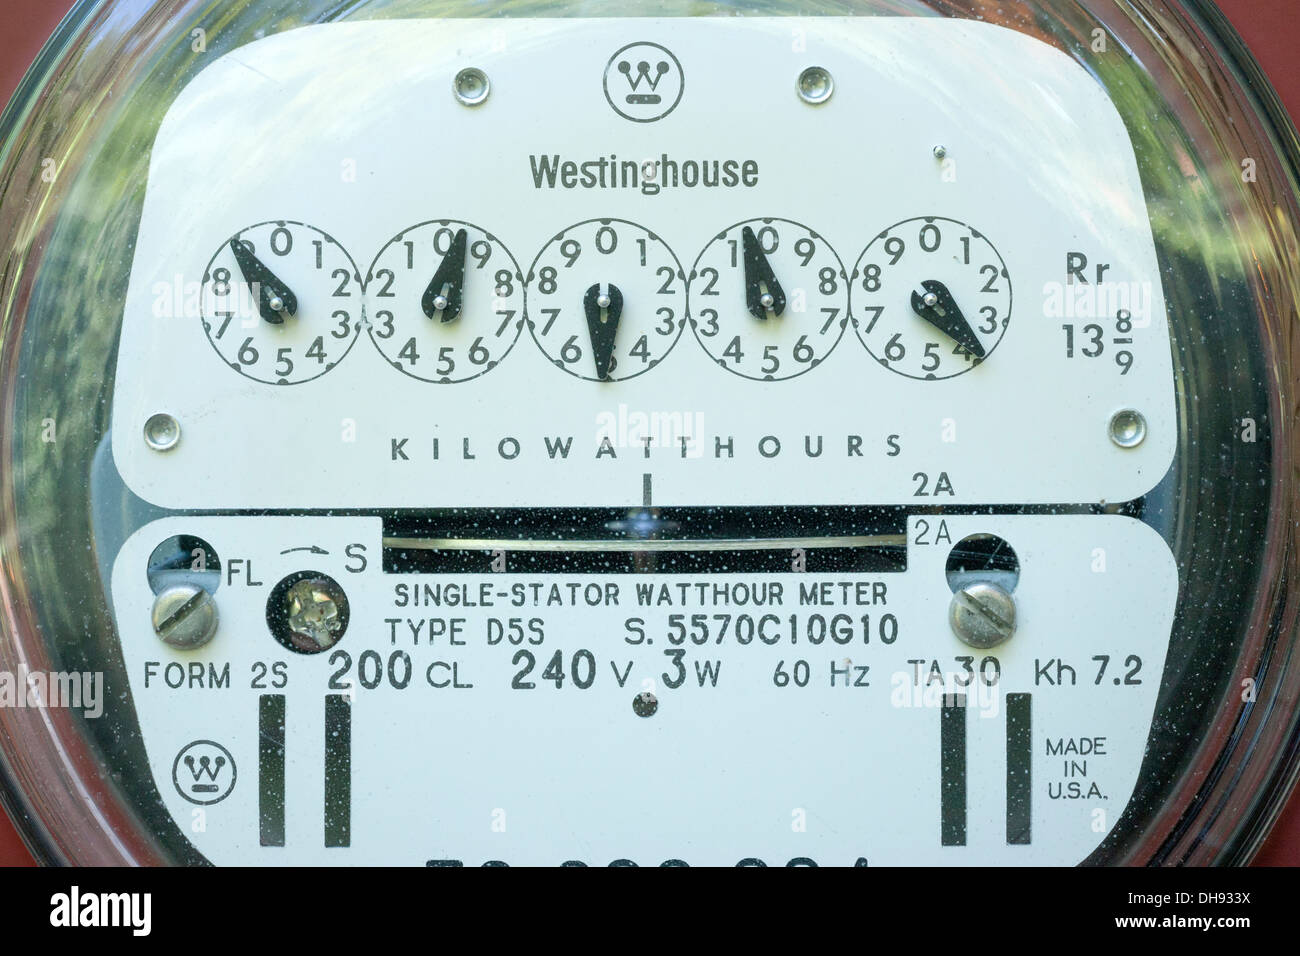 Westinghouse Electric Stock Photos & Westinghouse Electric Stock ...